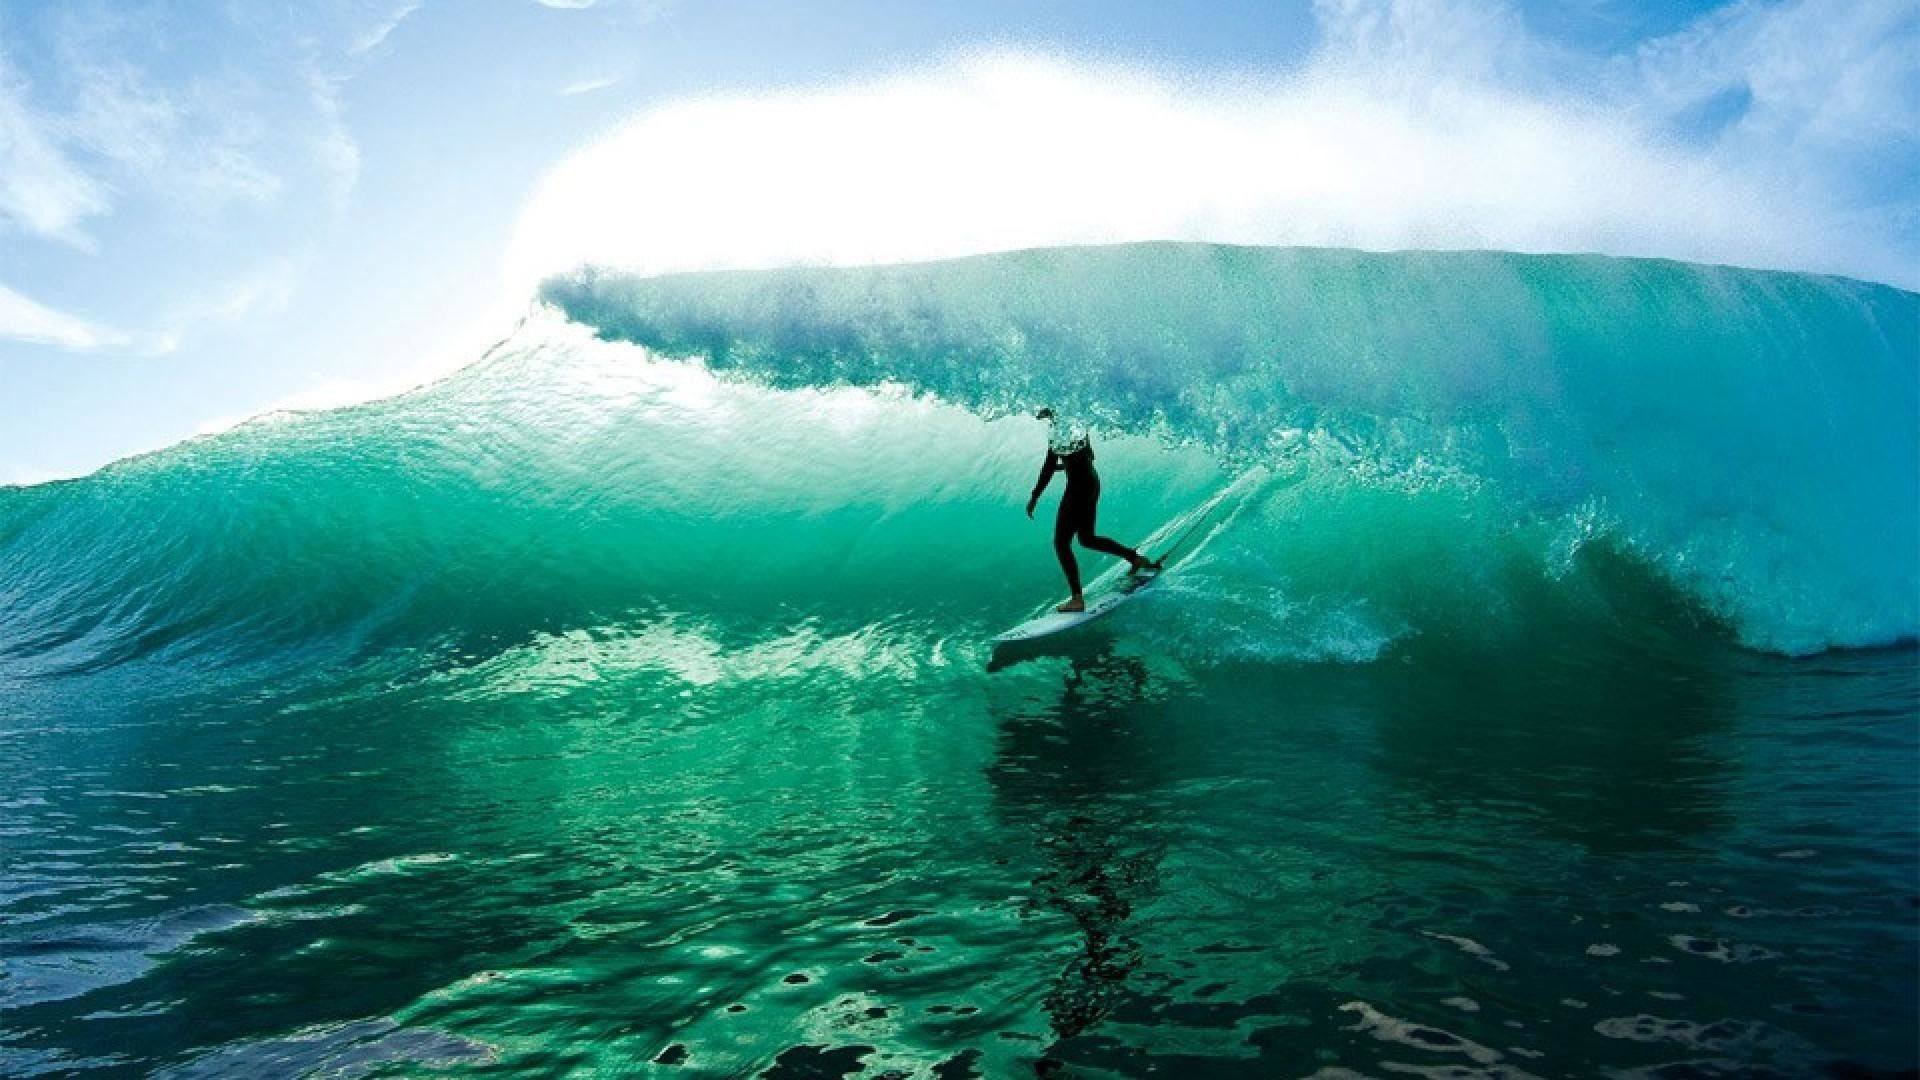 Gorgerous Hd Surfing Wallpaper 1920x1080 For Retina Surf